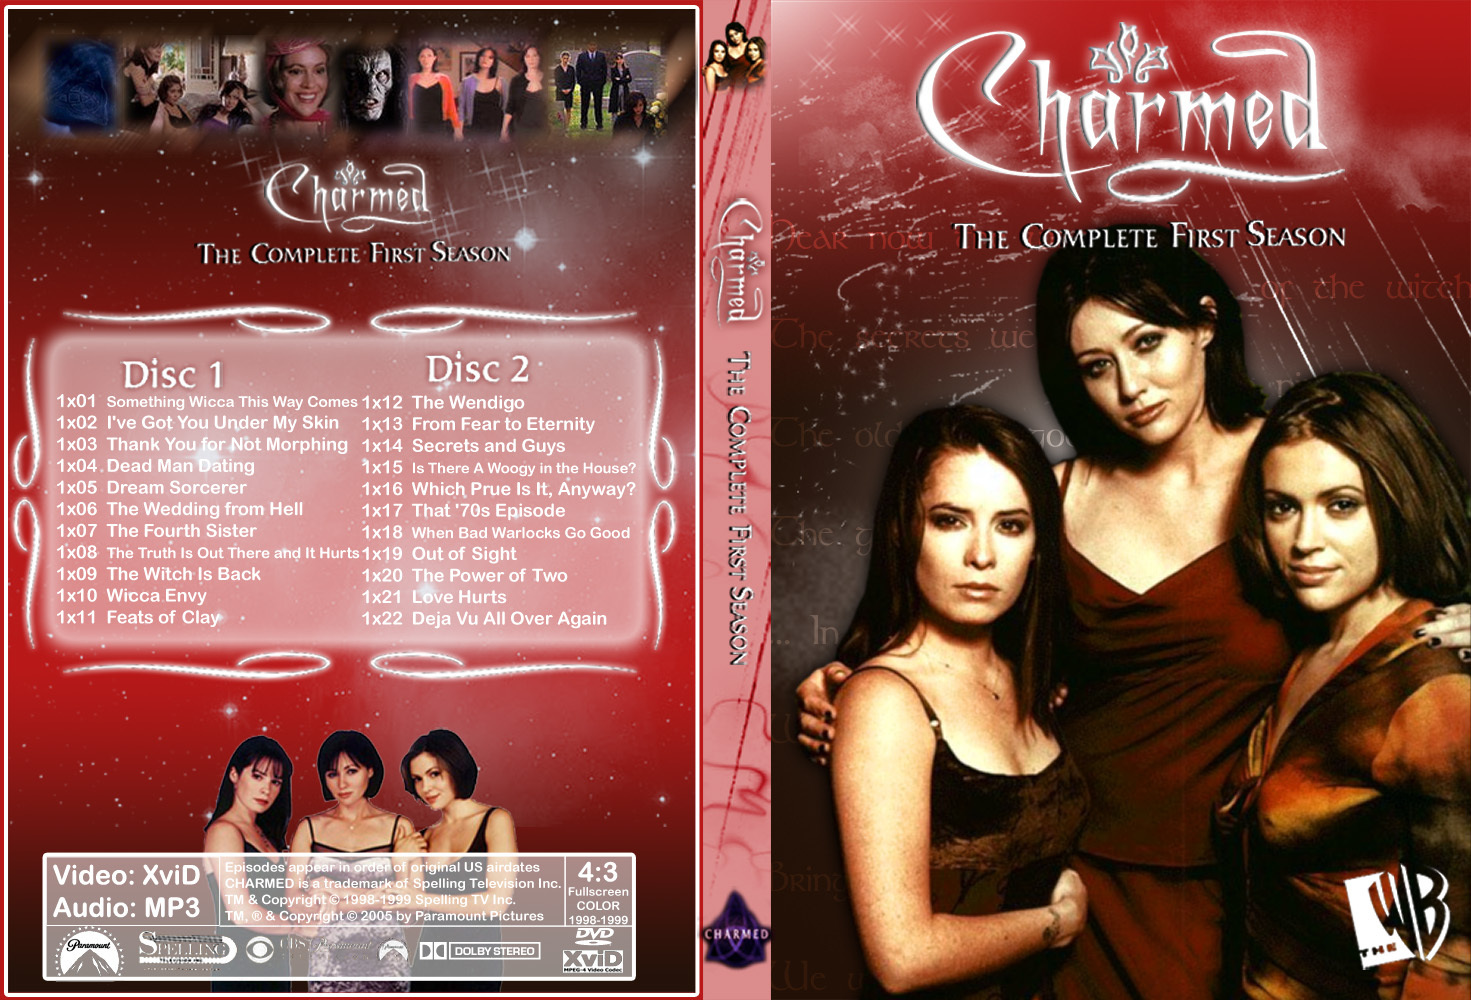 Charmed Season 1 Dvd Cover Made door Chibiboi